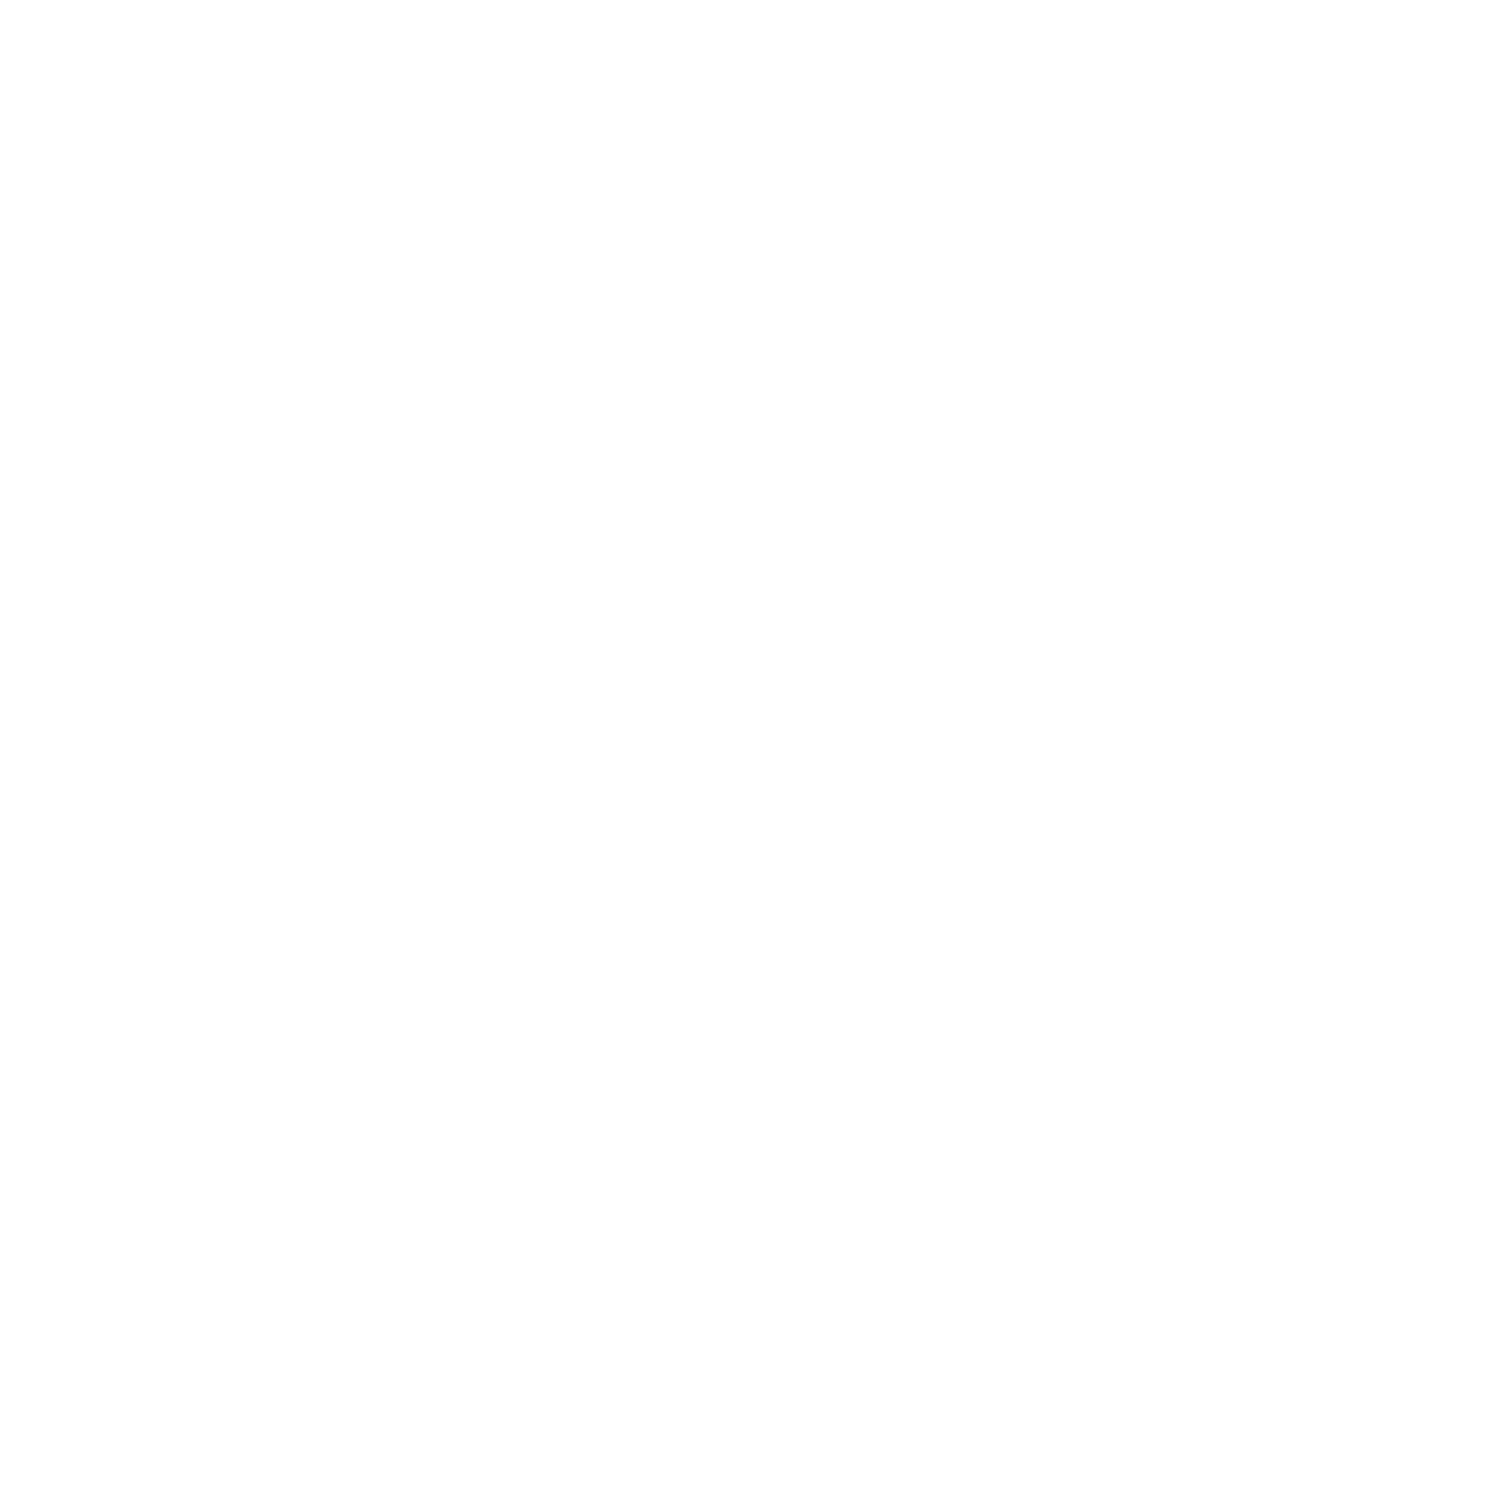 Lakeside Swim School